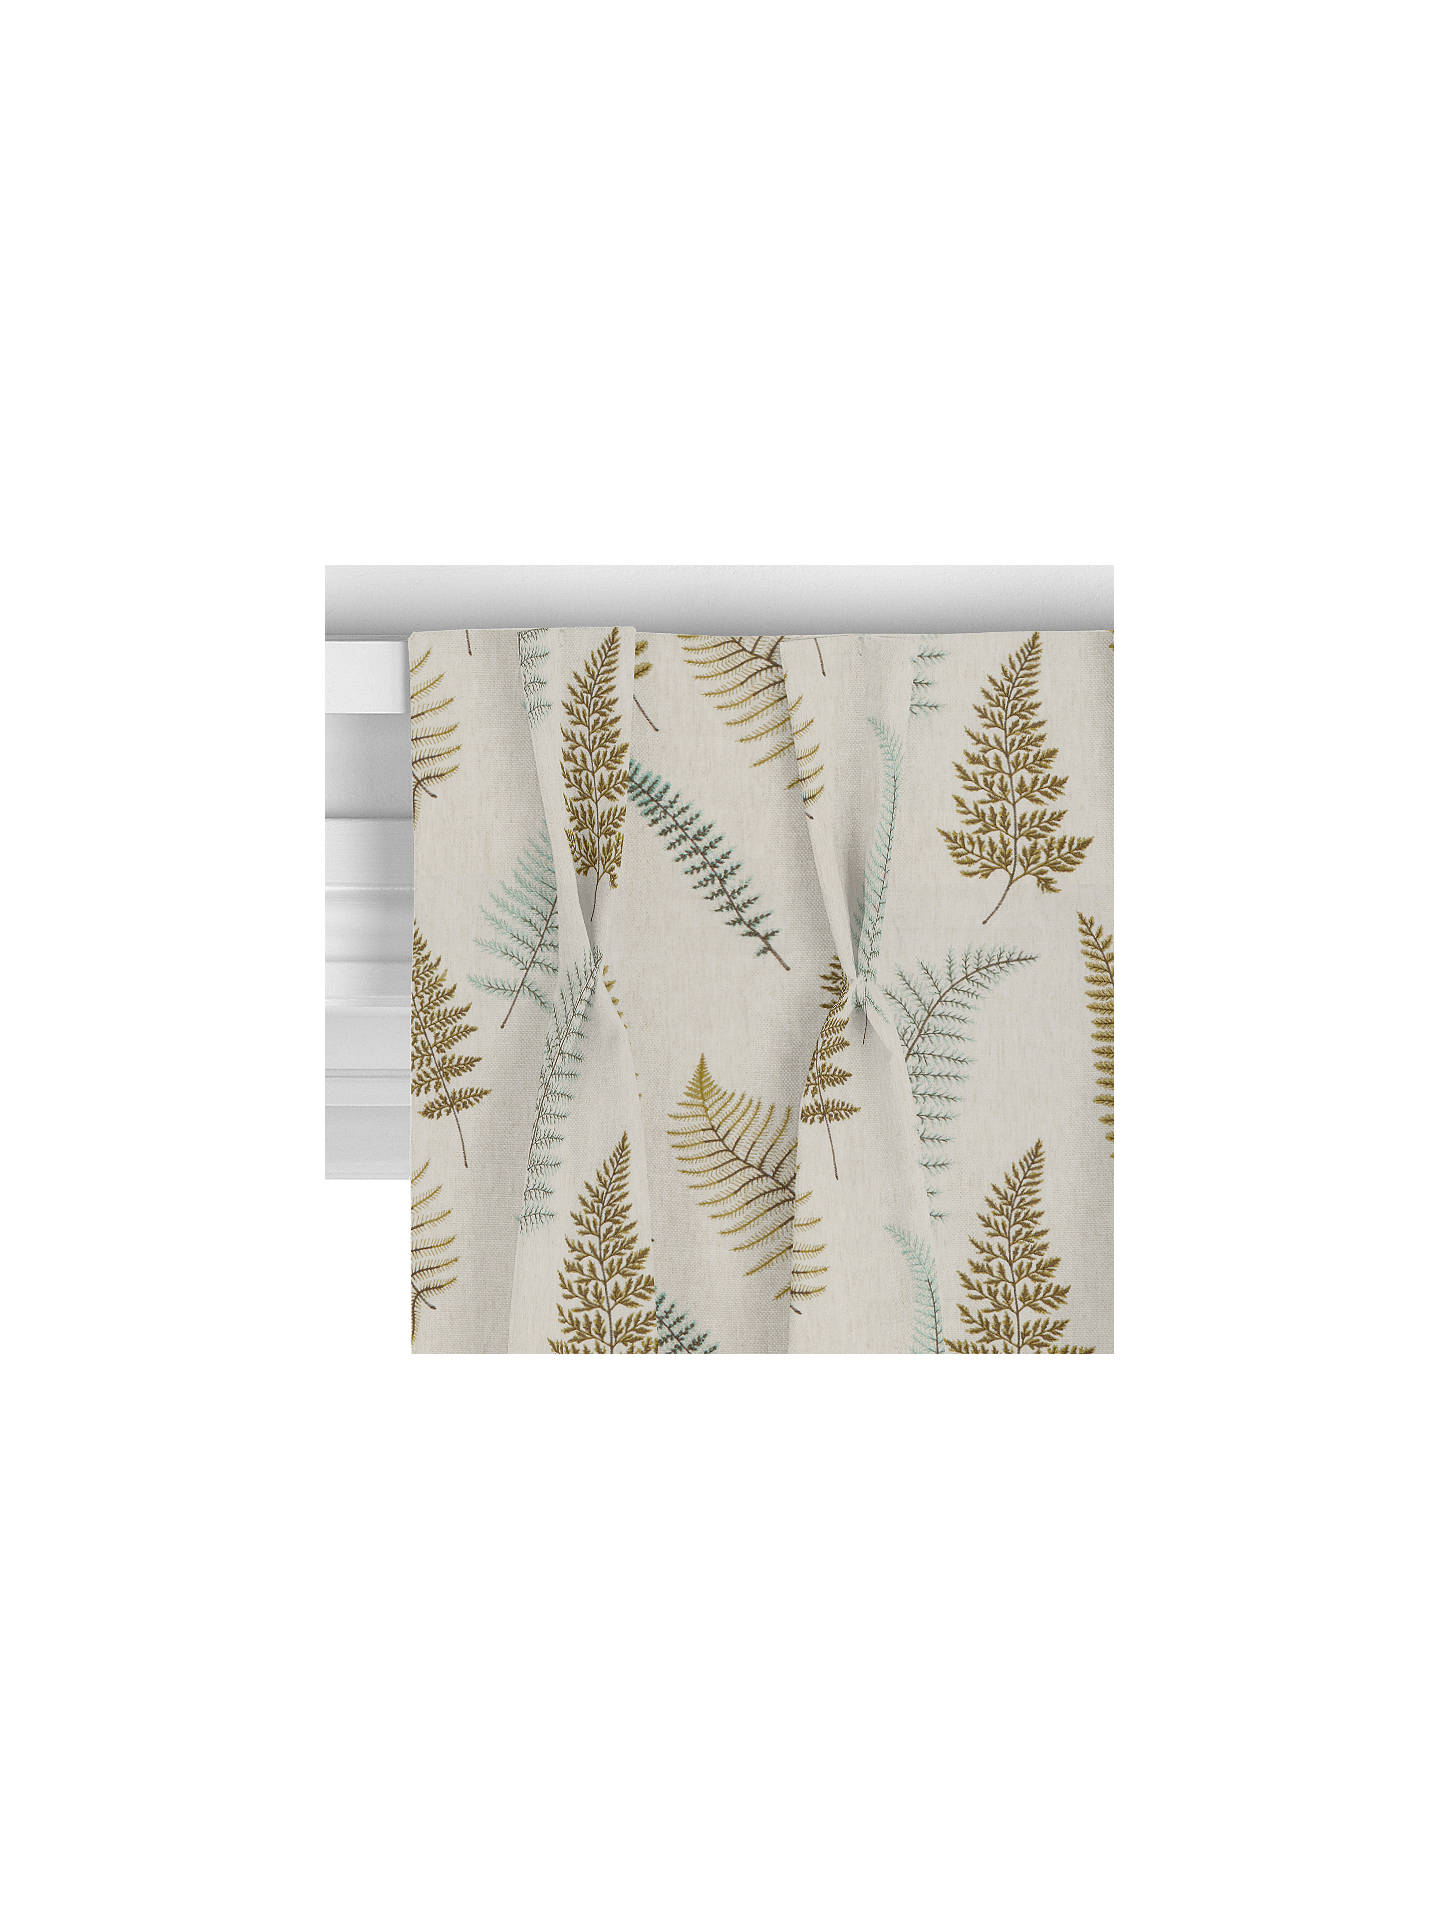 BuyJohn Lewis & Partners Fern Embroidery Curtain, Green Online at johnlewis.com